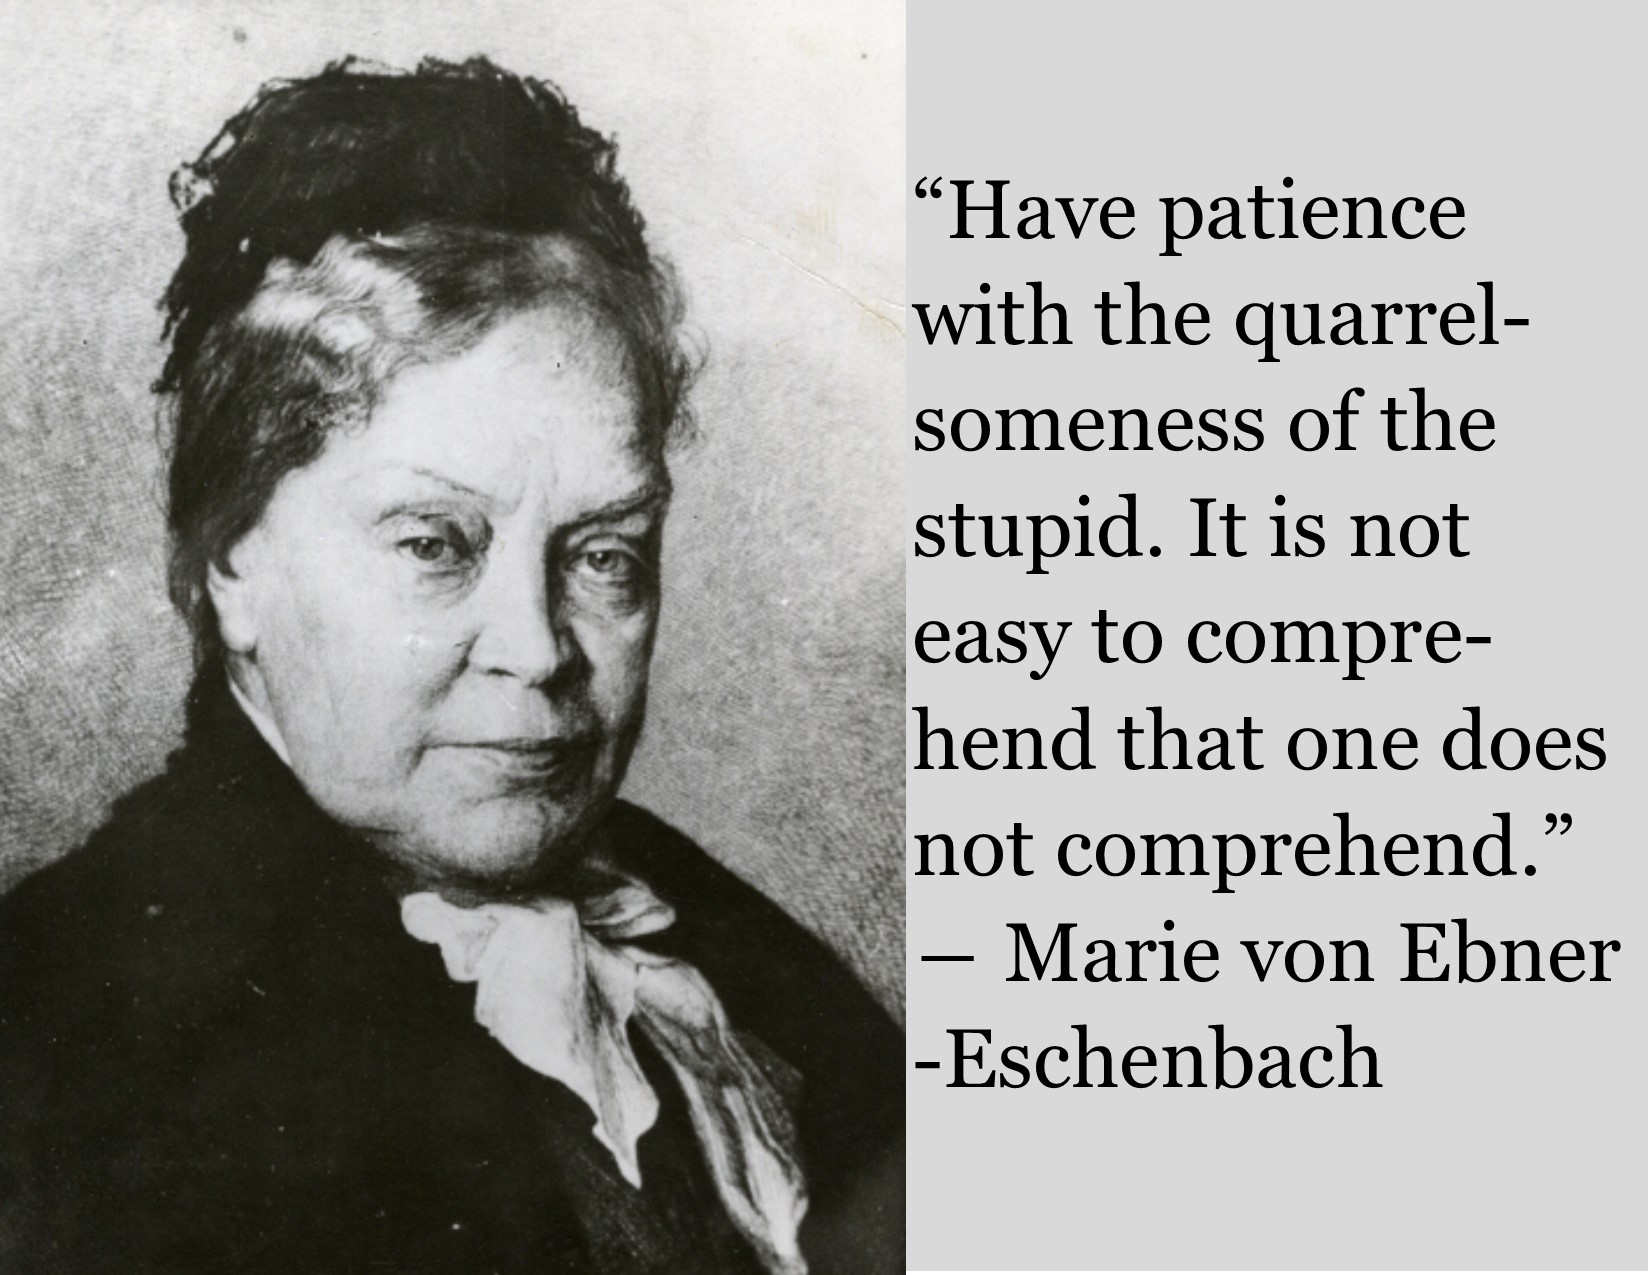 """Have patience with the quarrelsomeness of the stupid. It is not easy to comprehend that one does not comprehend."" ― Marie von Ebner-Eschenbach [OC] [1650×1275]"